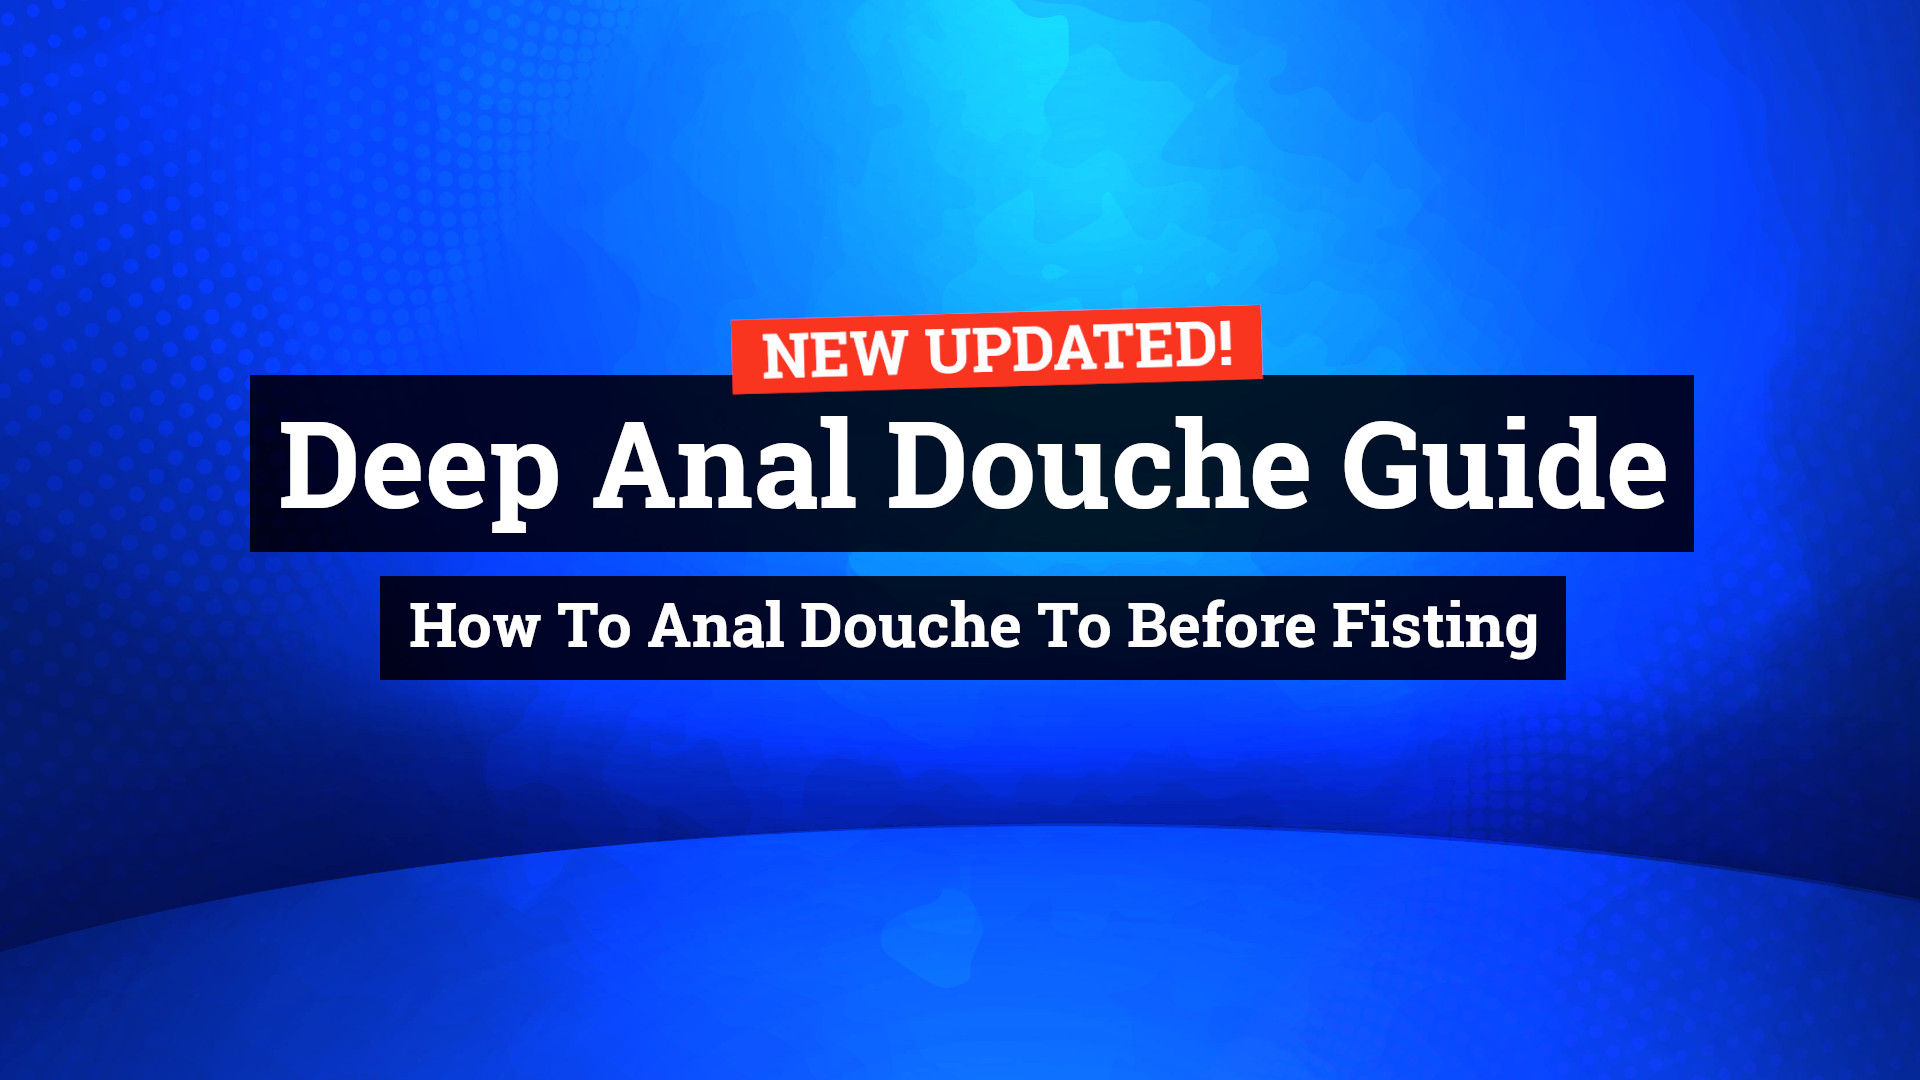 Deep Anal Douche Guide – How To Anal Douche To Before Fisting